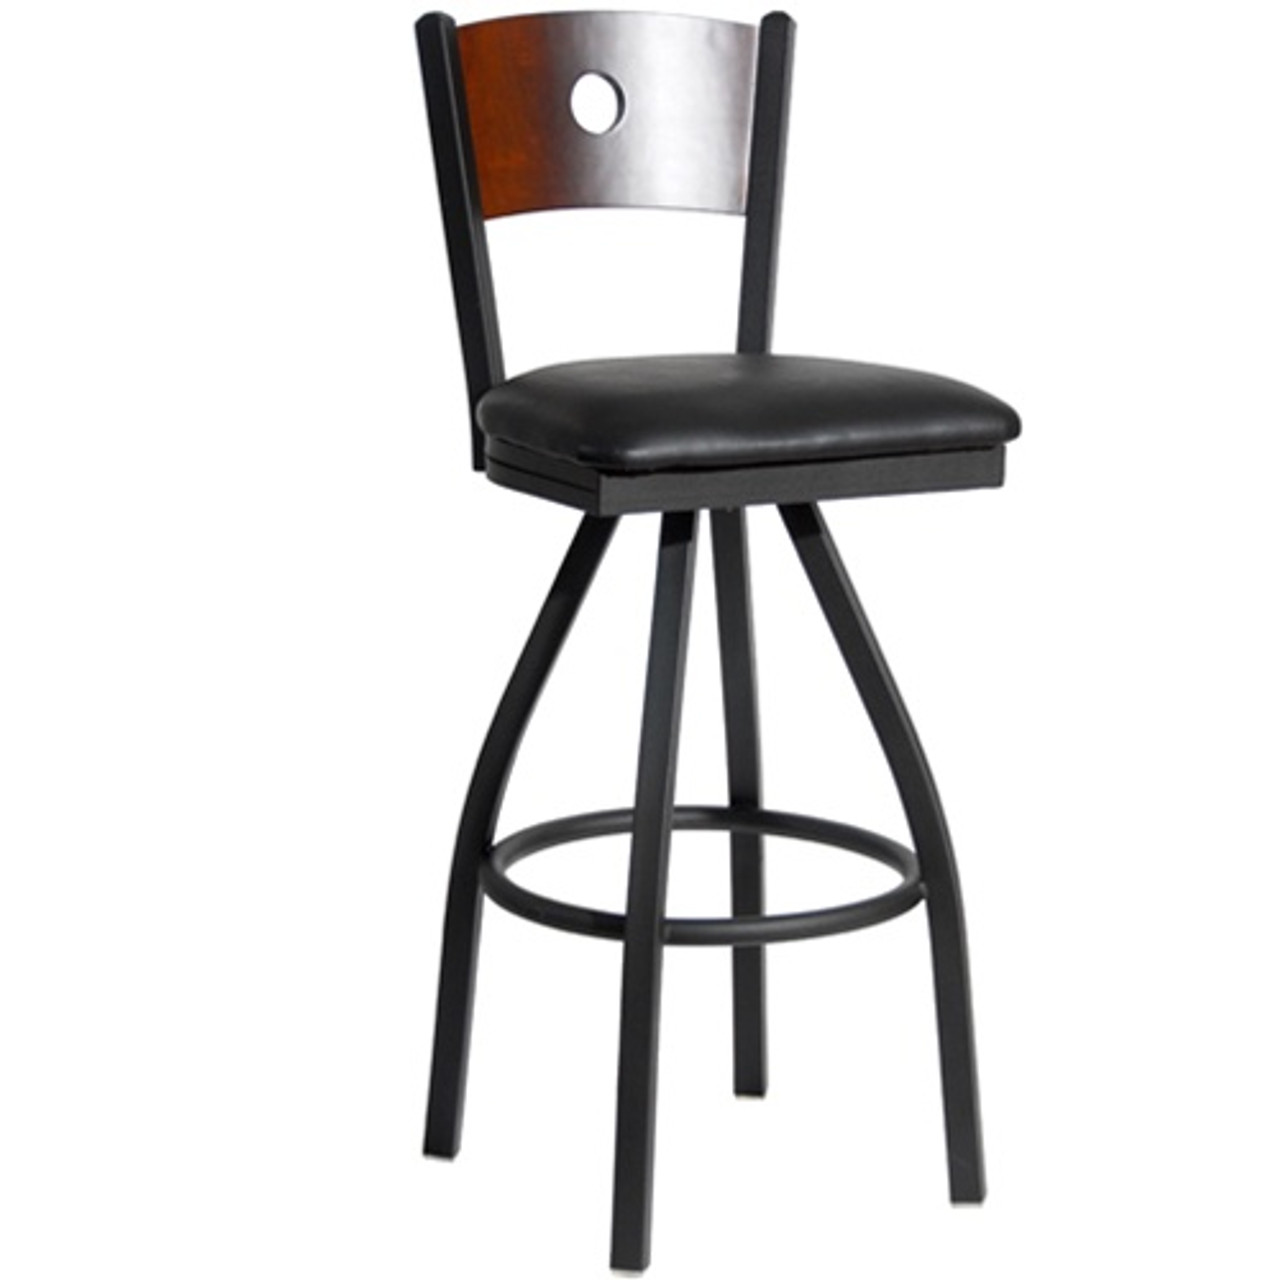 Bfm Seating Darby Black Metal Circle Wood Back Restaurant Swivel Bar Stool With Padded Seat 2152s Sbv Pub Bar Stools Commercial Bar Stools